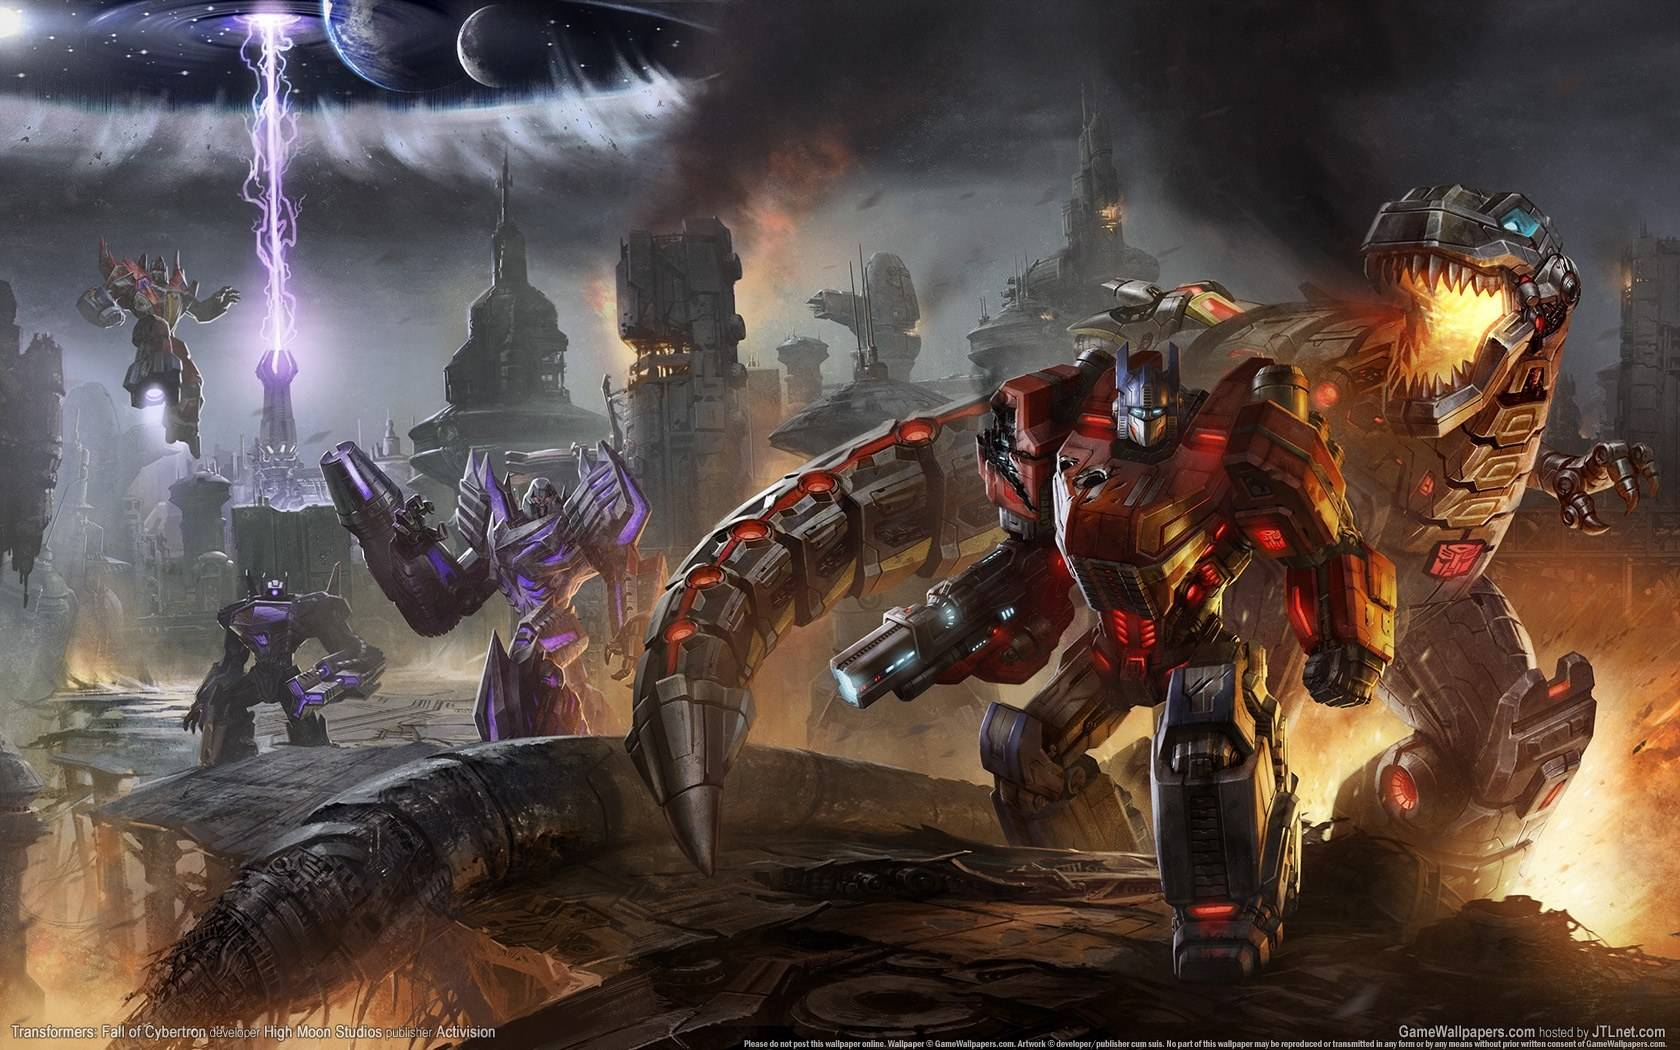 Transformers: Fall of Cybertron Wallpapers in HD